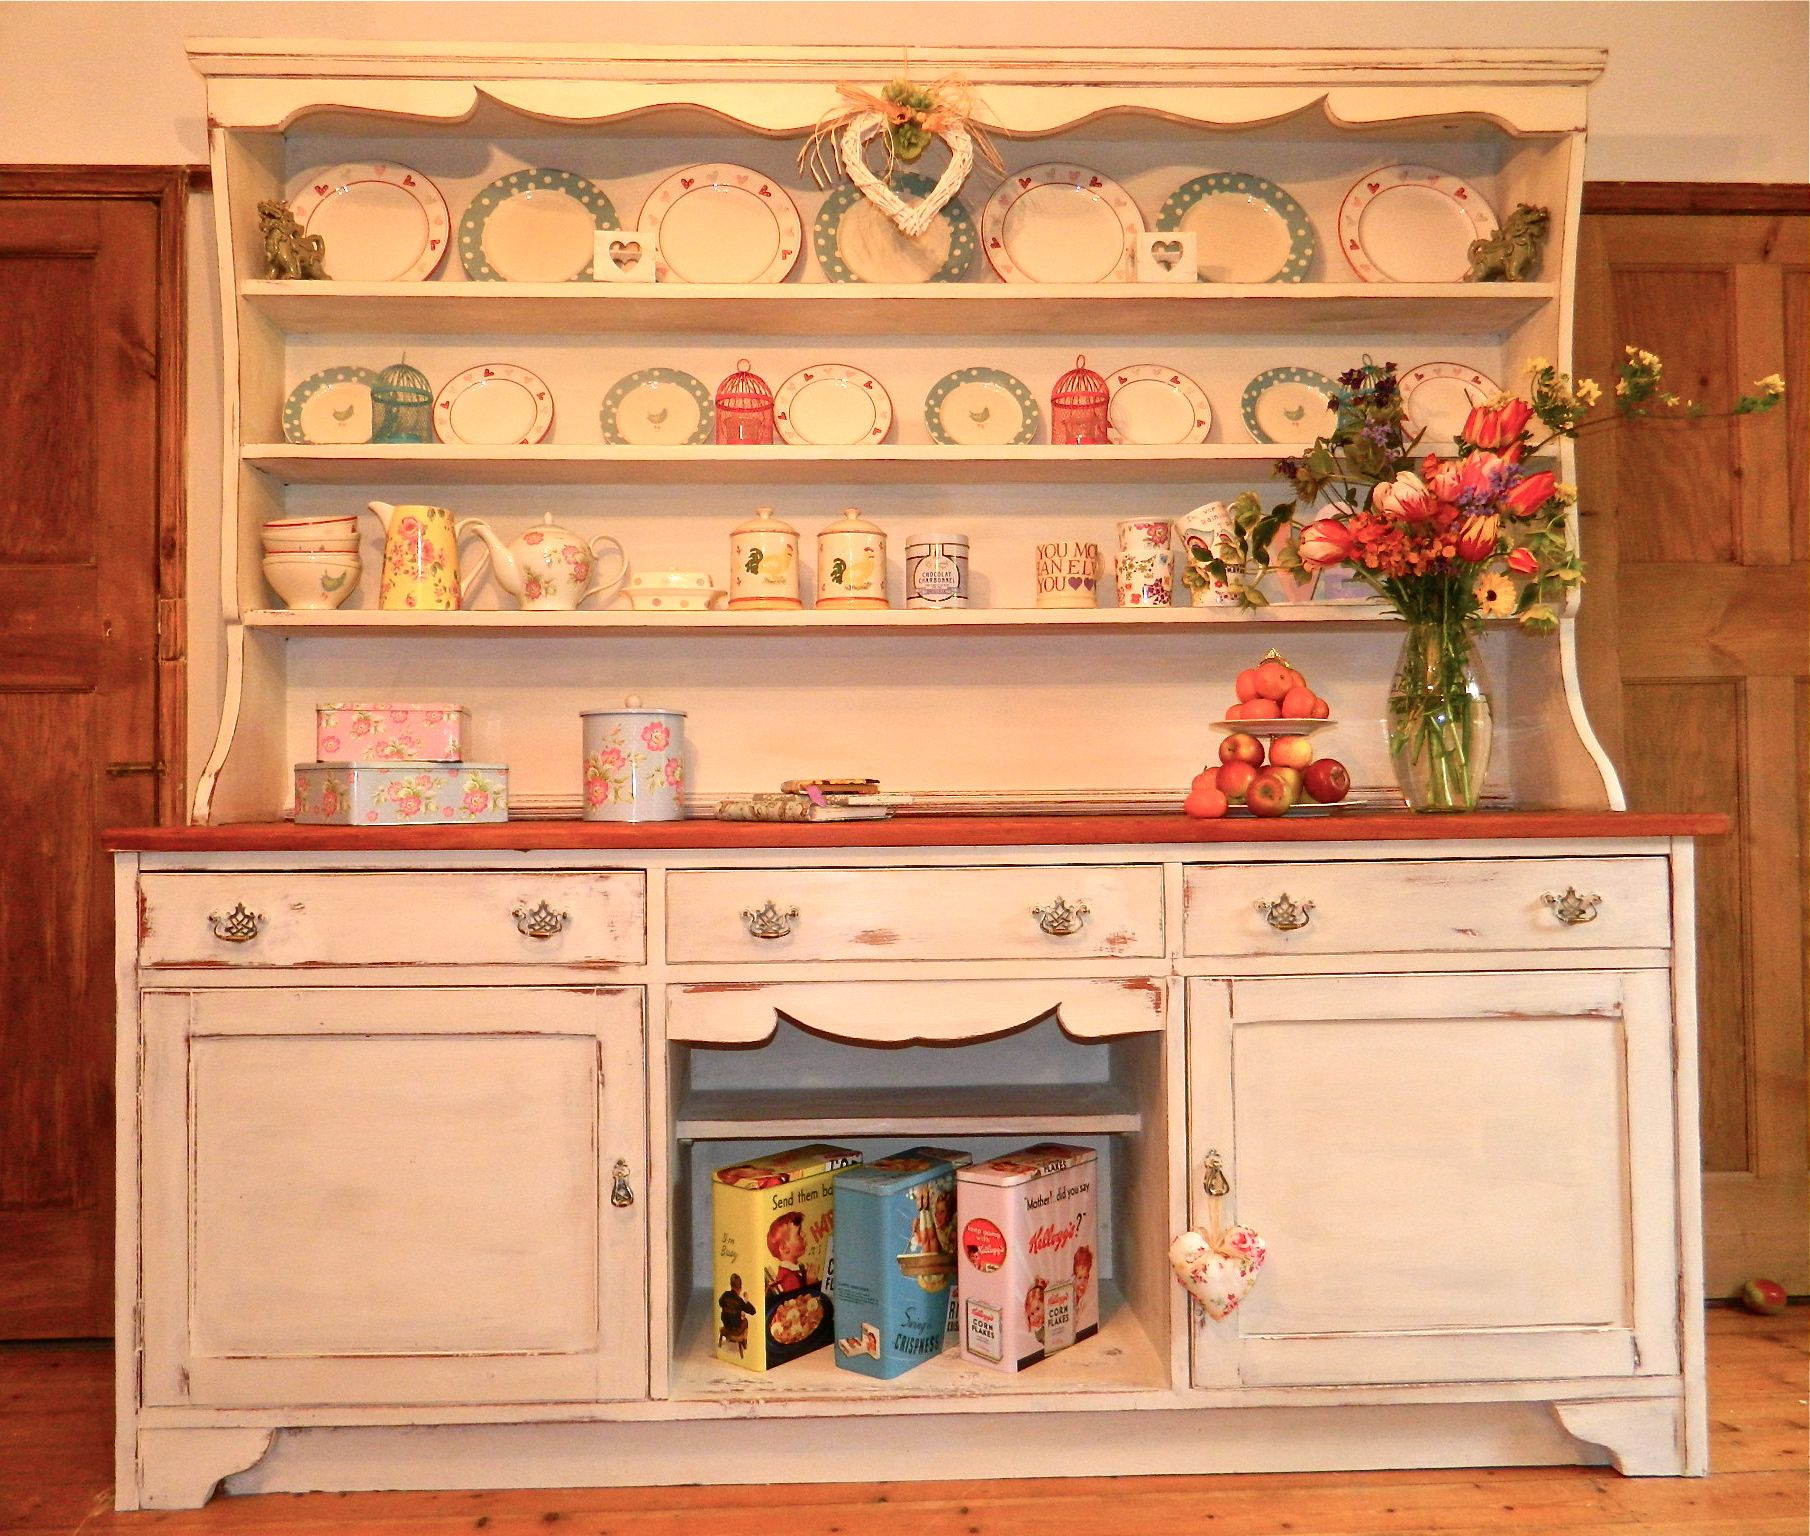 Extremely Large Rustic Shabby Chic Pine Kitchen Farmhouse Dresser